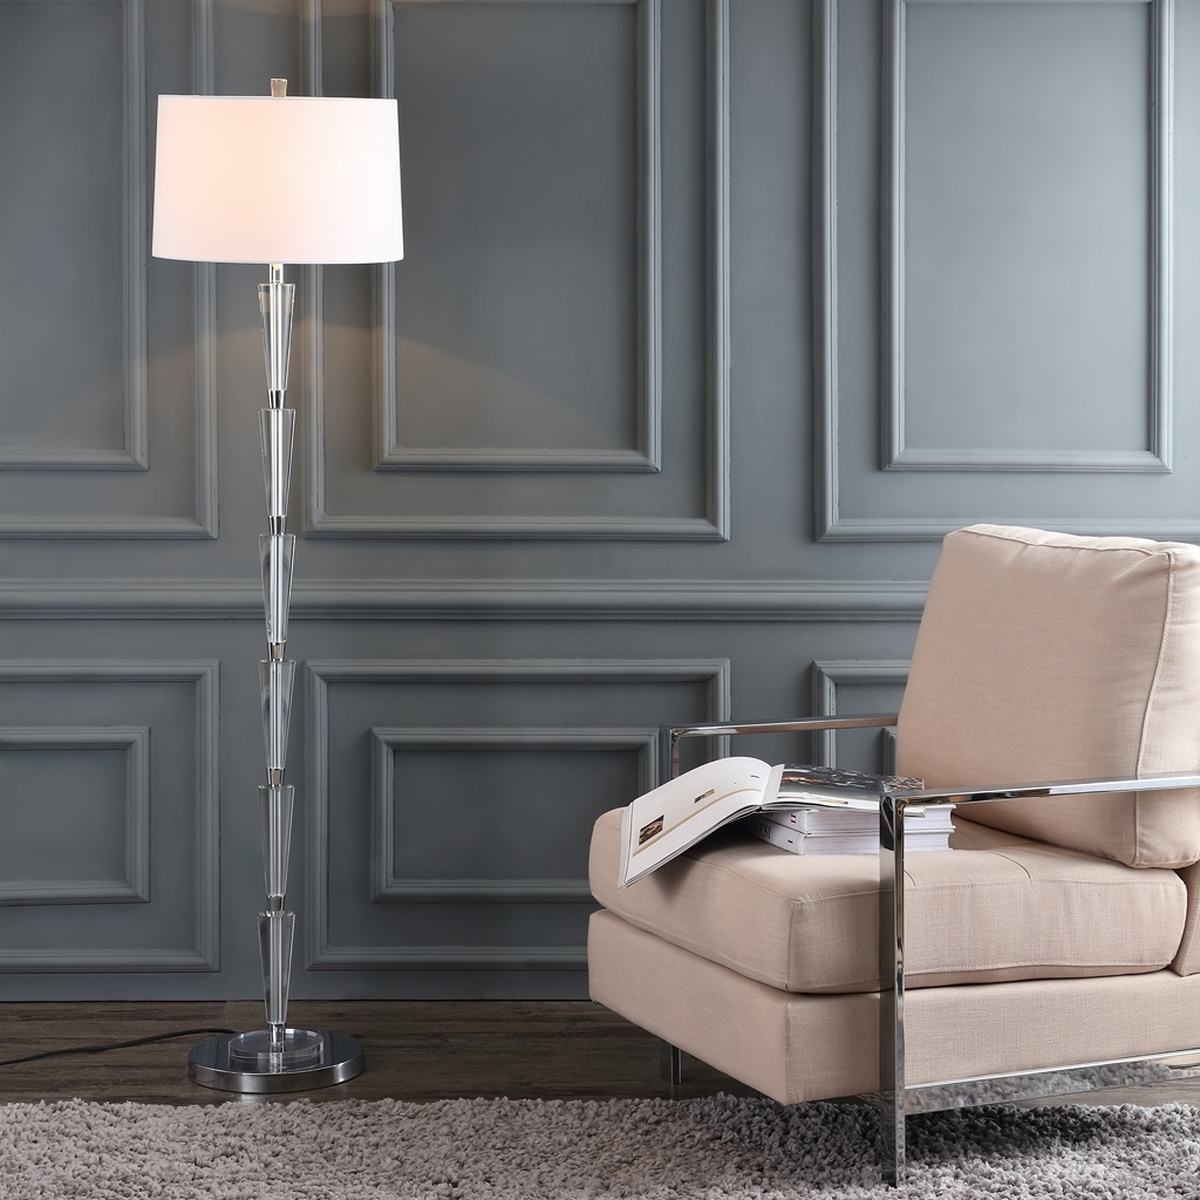 Instantly Upgrade Any Living Room With This Contemporary Floor Lamp And Complementary Off White Shade Inspired By The Glitz Glam Of Jazz Age